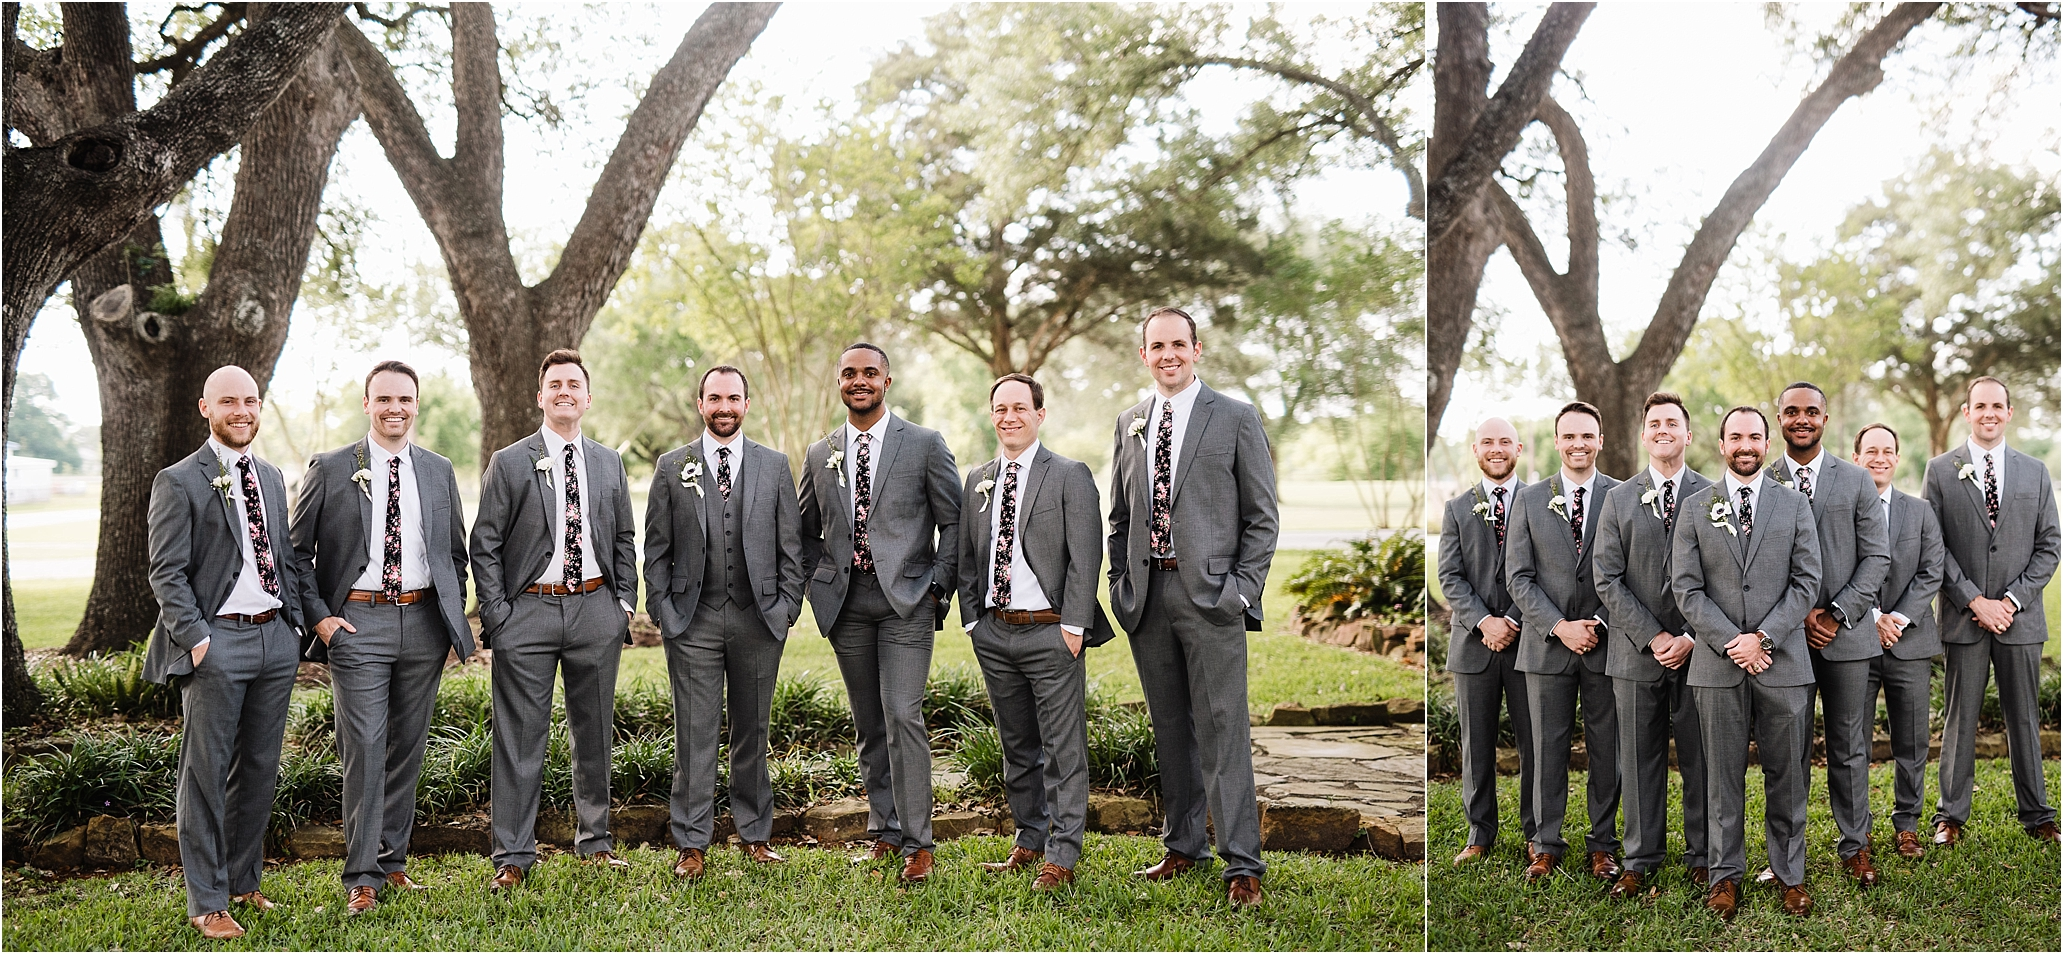 PattisonHouse_TexasWeddingPhotographer_CarlyCrockett&MattBrownWedding_0087.jpg